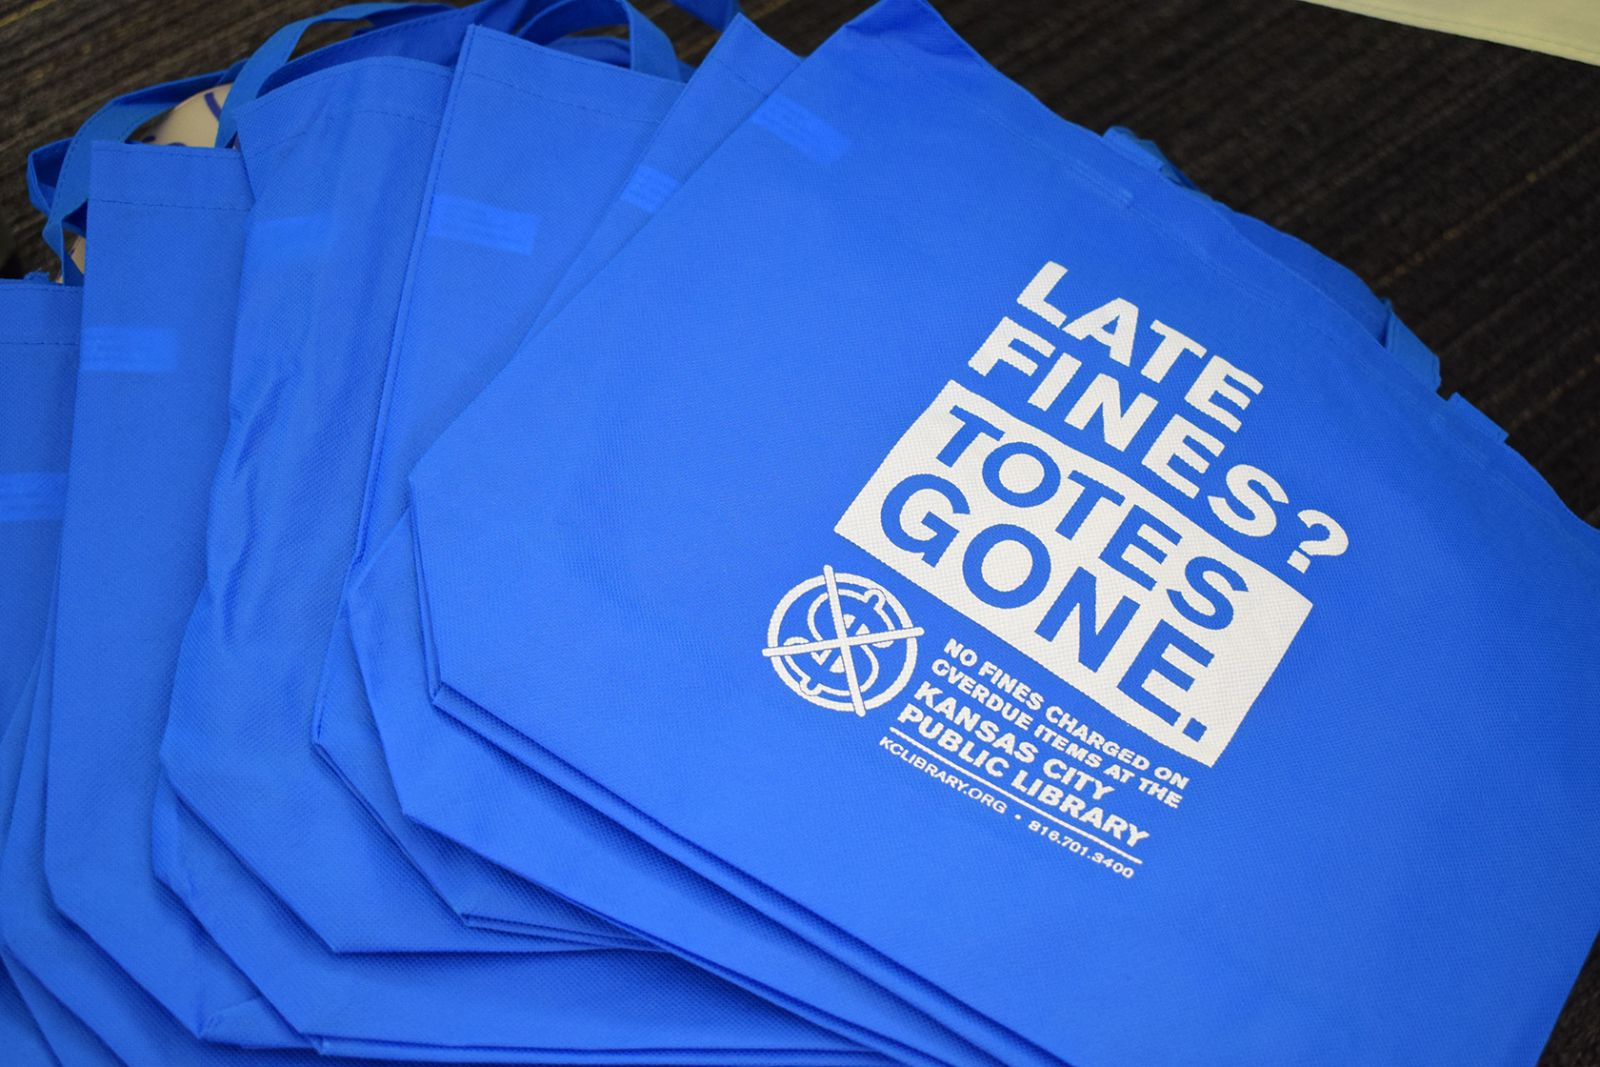 Limited-edition tote bags image